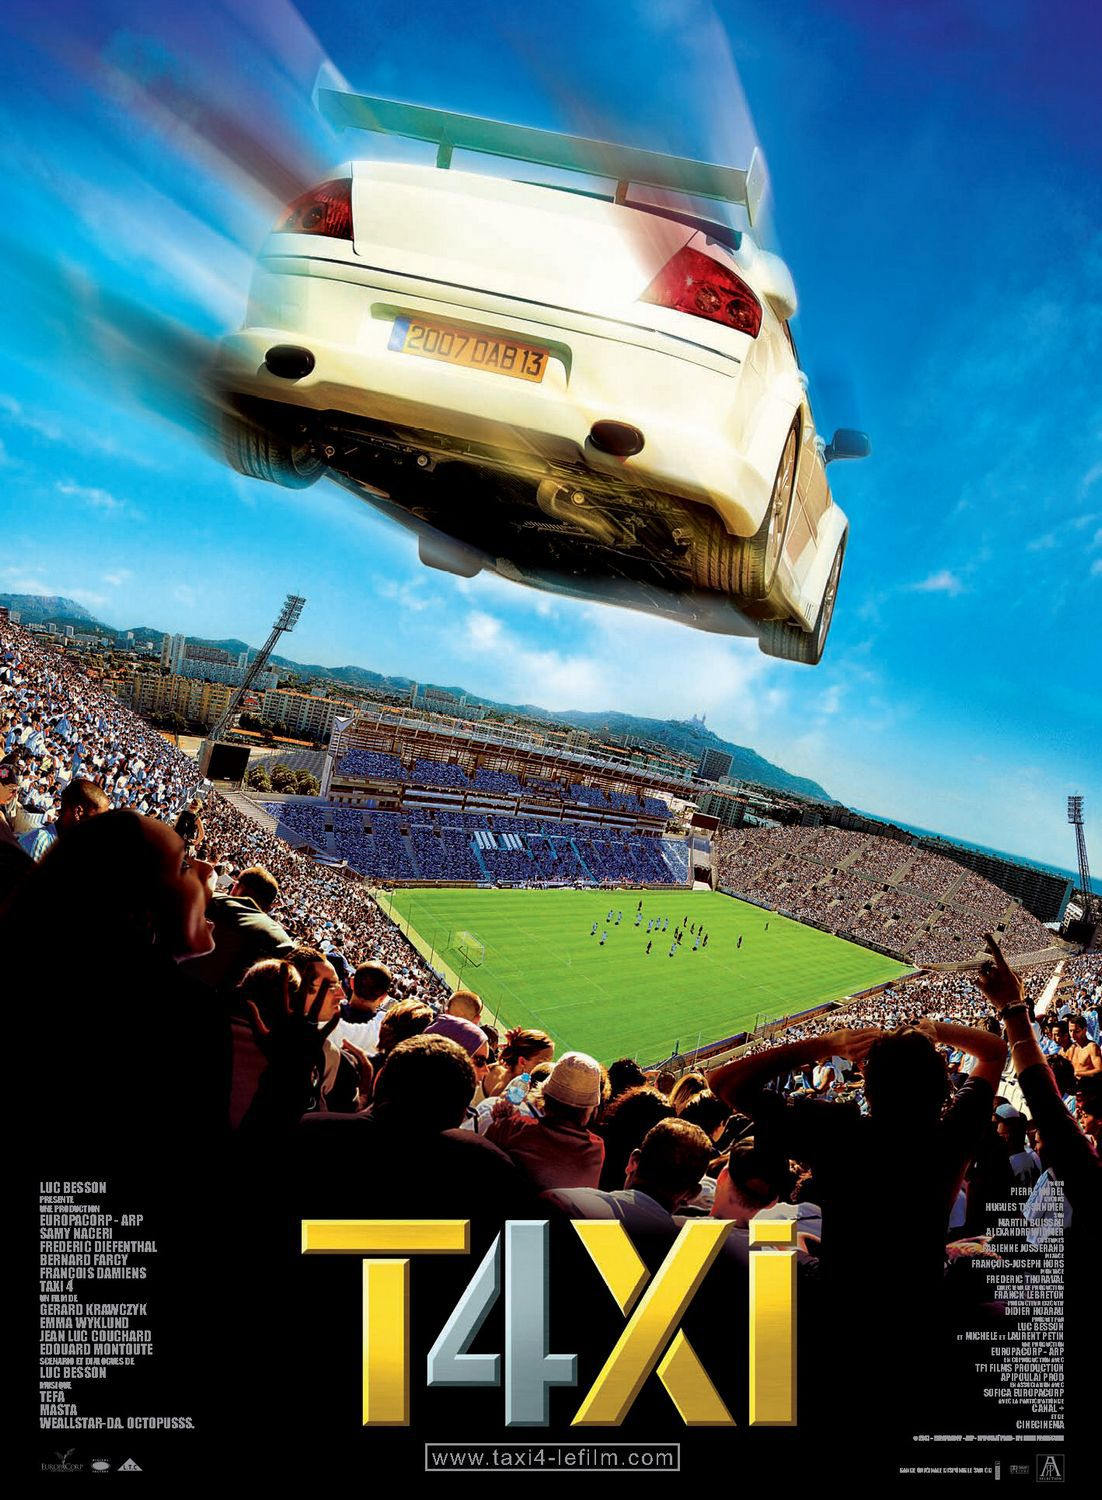 Taxi 4 (2007) - film poster